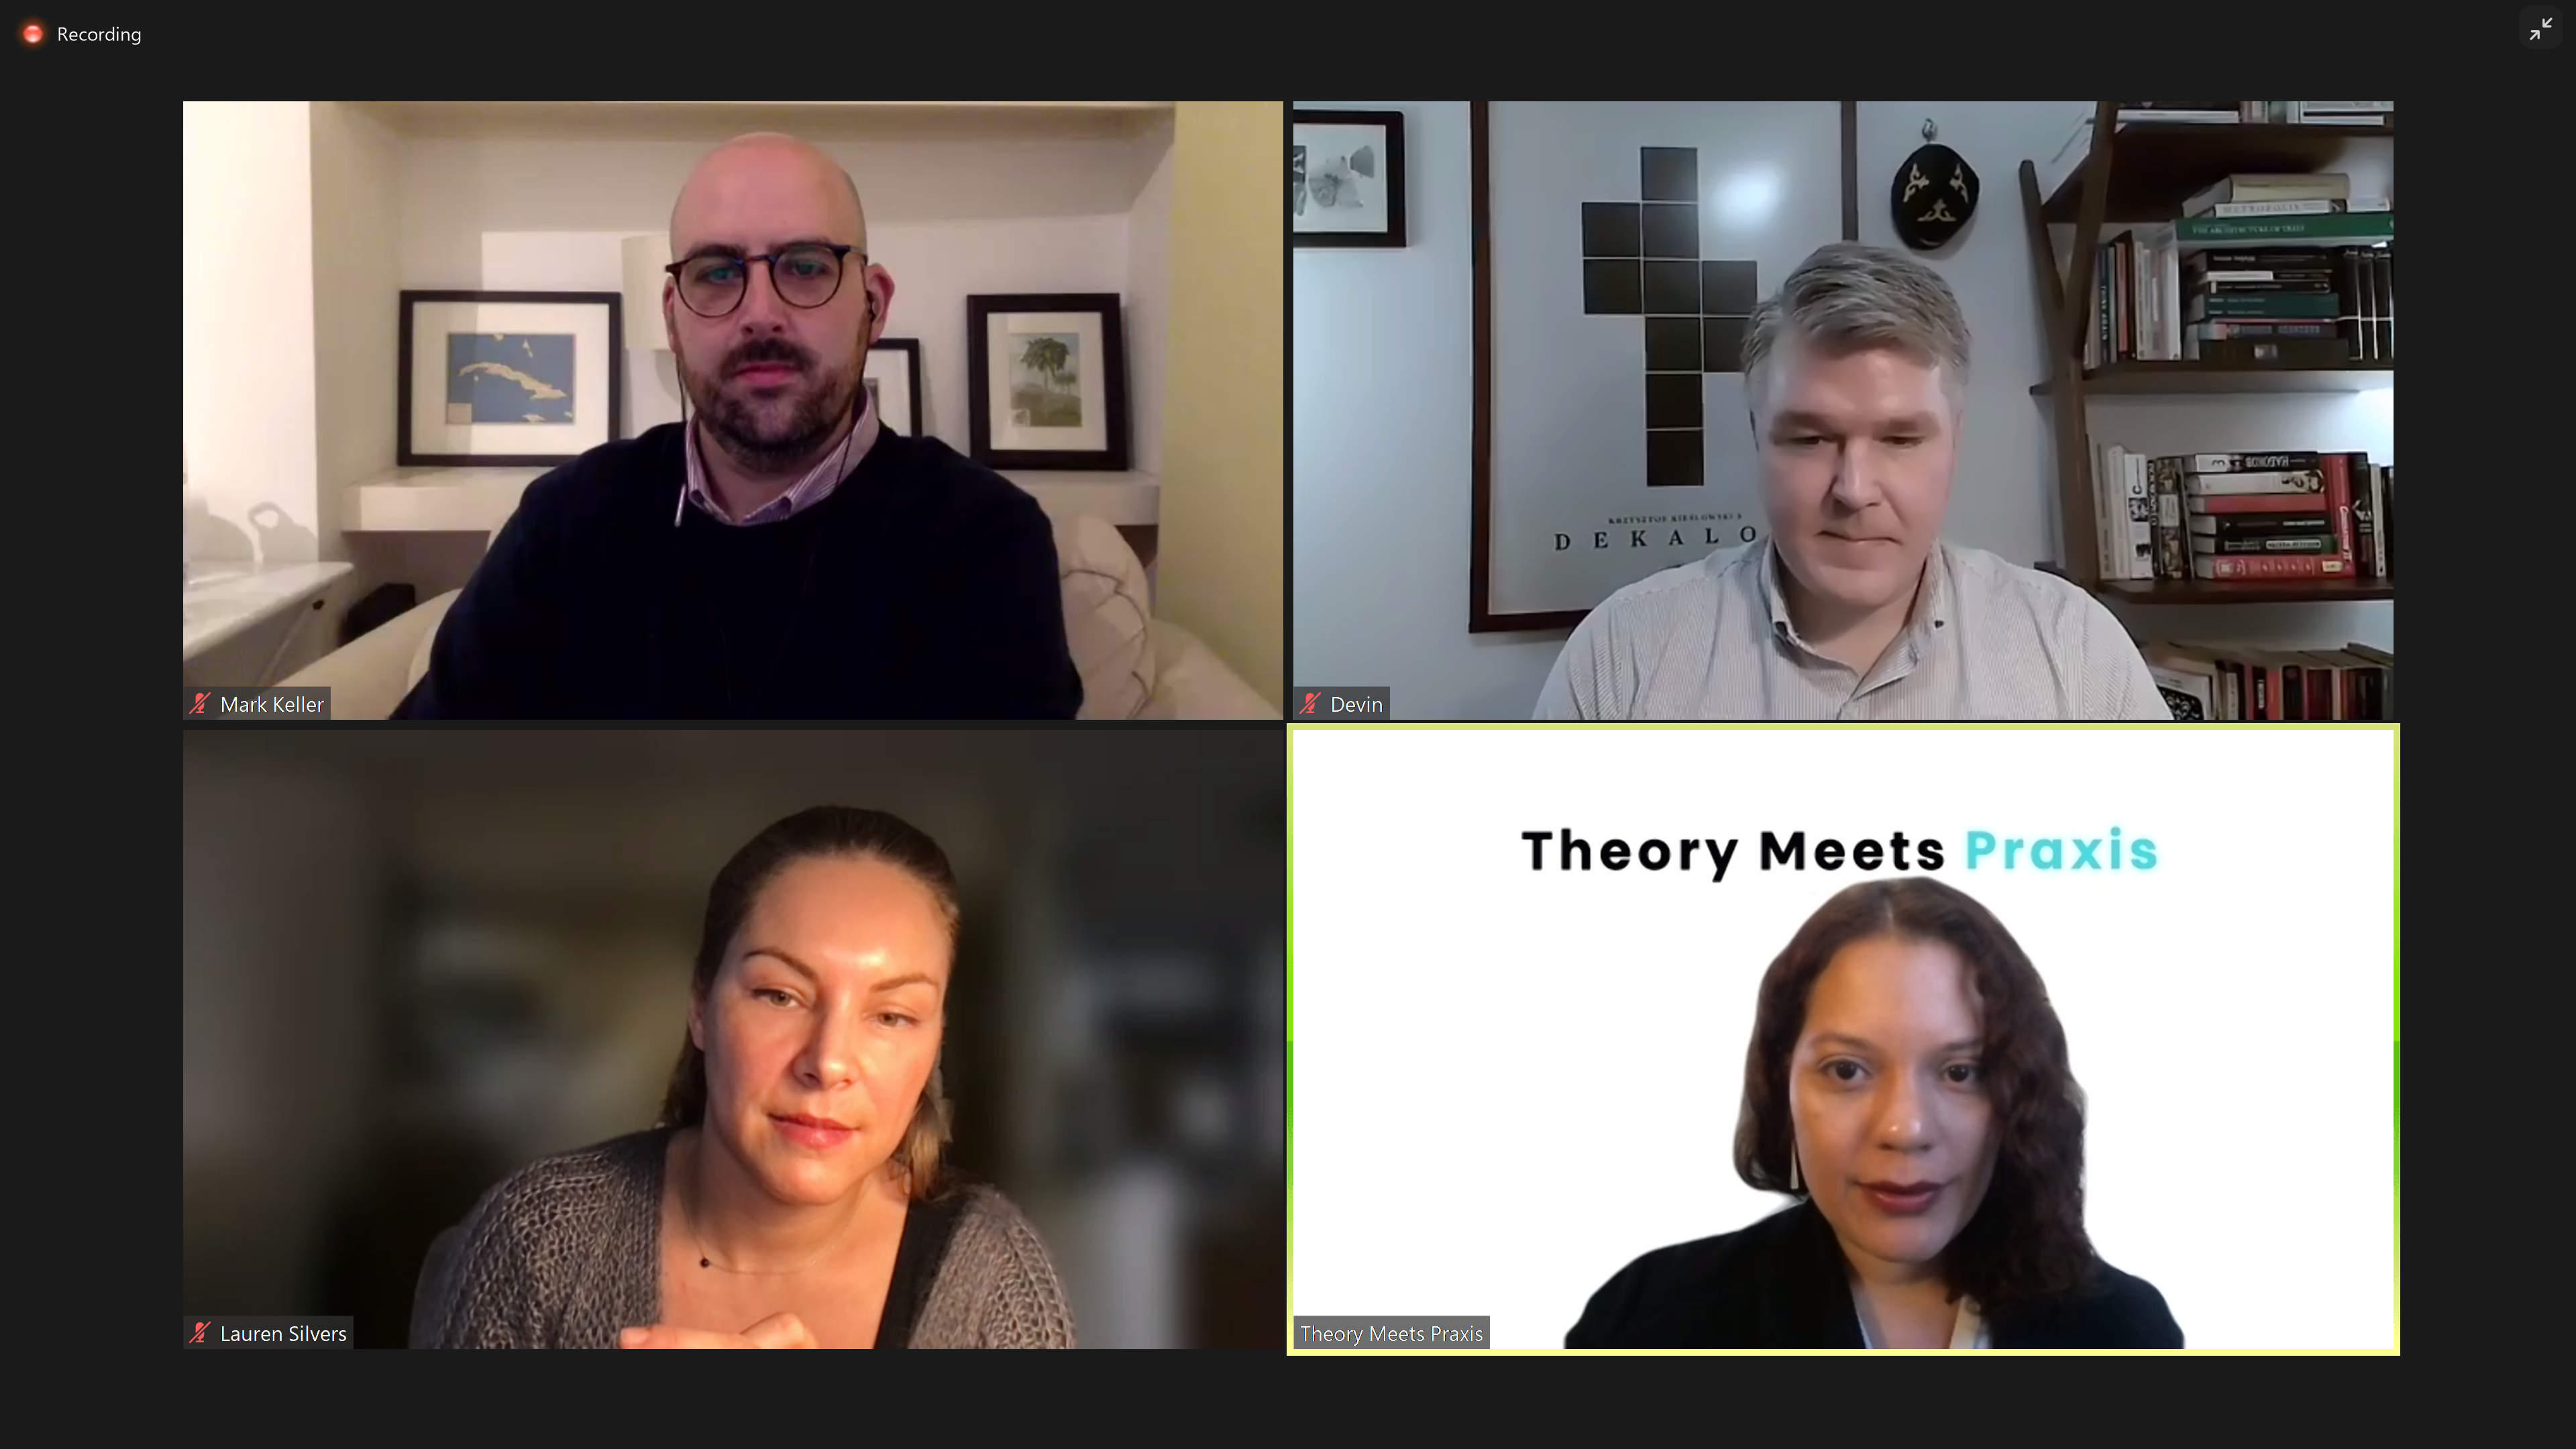 Virtual Humanities Conference - Theory Meets Praxis 03.13.2021